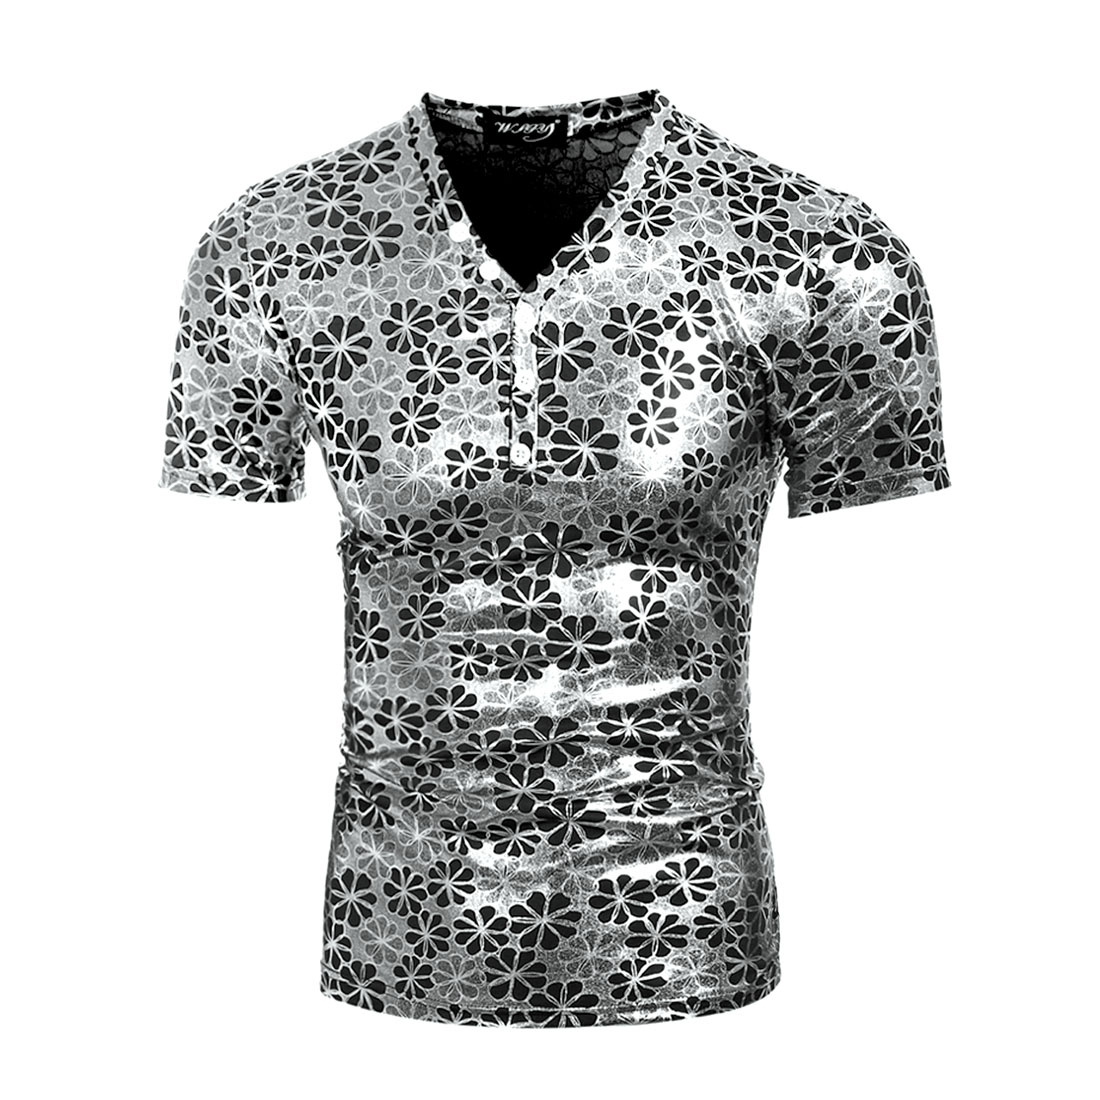 Men's Floral Prints Shiny Button Upper Short Sleeves Shirt Silver (Size M / 38)